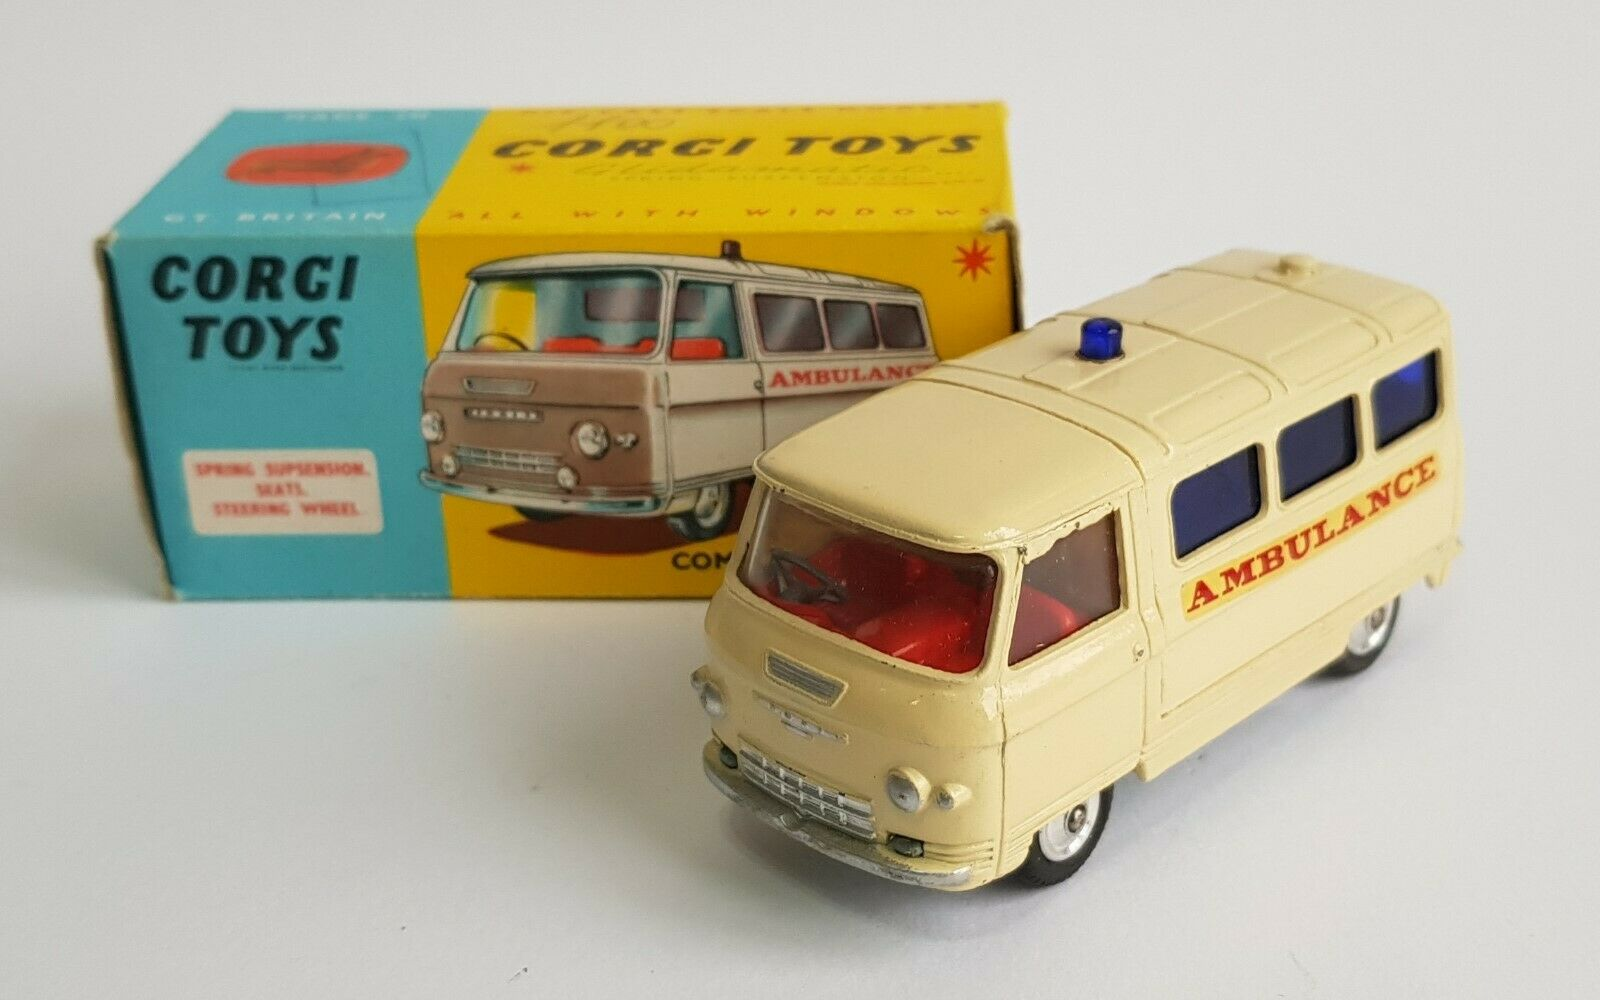 Corgi Spielzeugs No. 463, Commer Ambulance, - Superb Very Near Mint Condition.